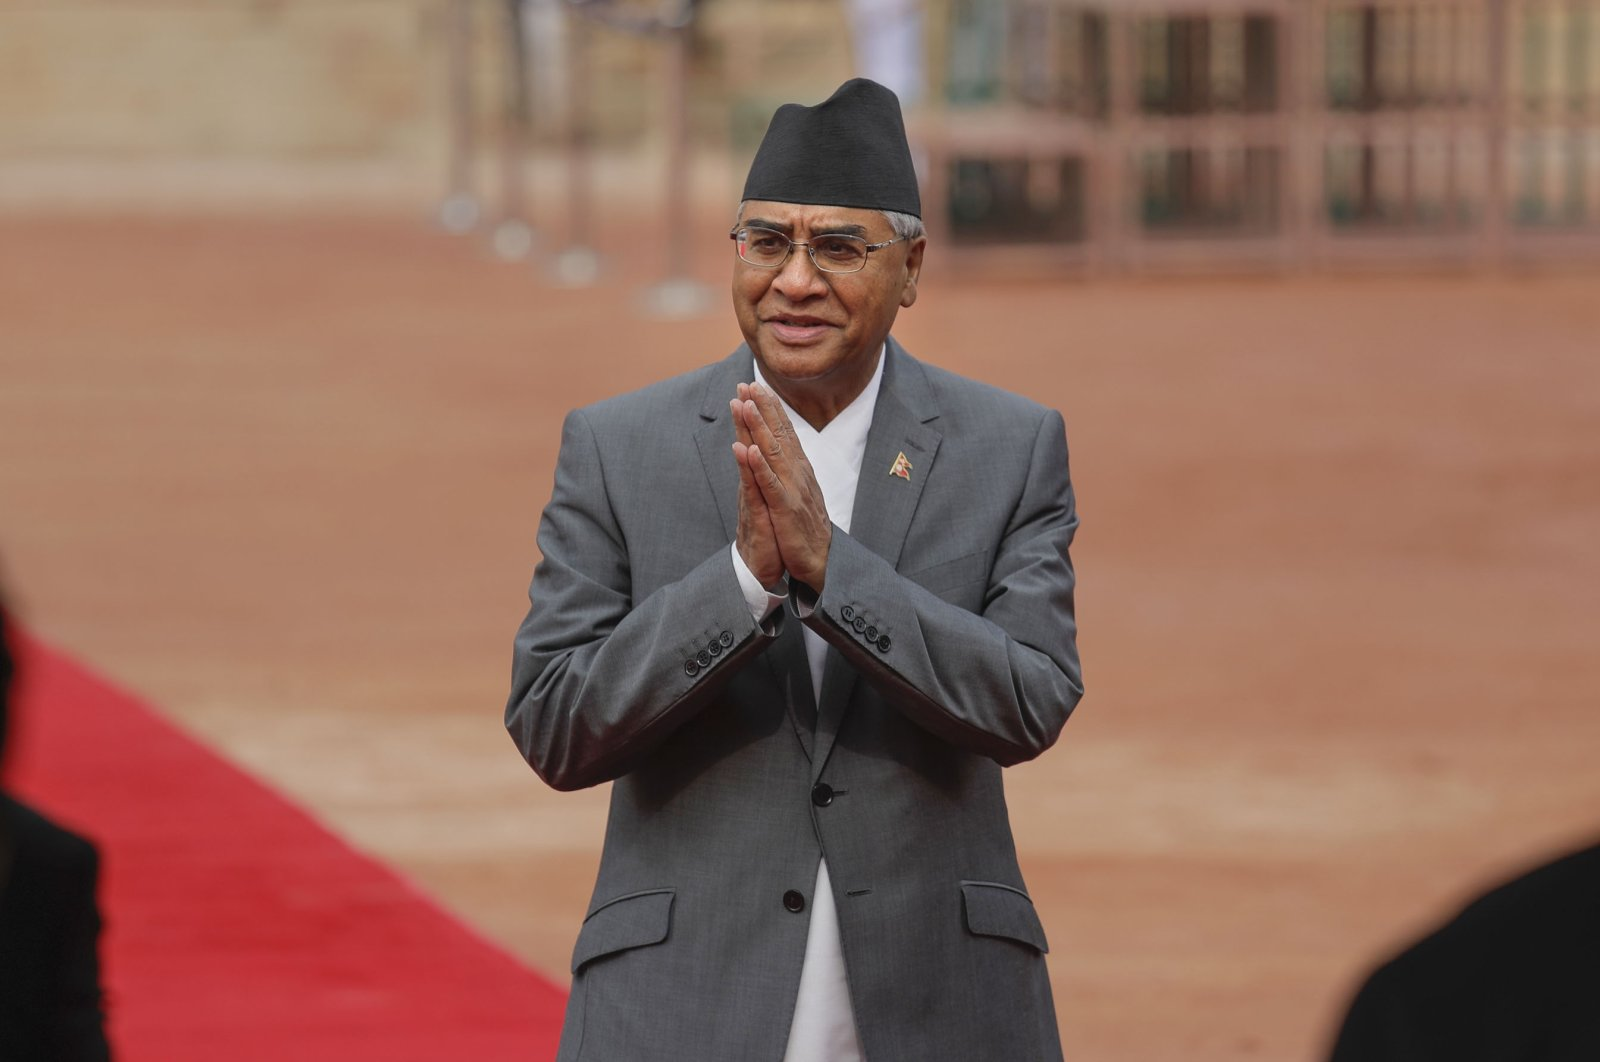 Nepalese Prime Minister Sher Bahadur Deuba greets Indian ministers during his ceremonial reception at the Indian presidential palace in New Delhi, India, Aug. 24, 2017. (AP Photo)